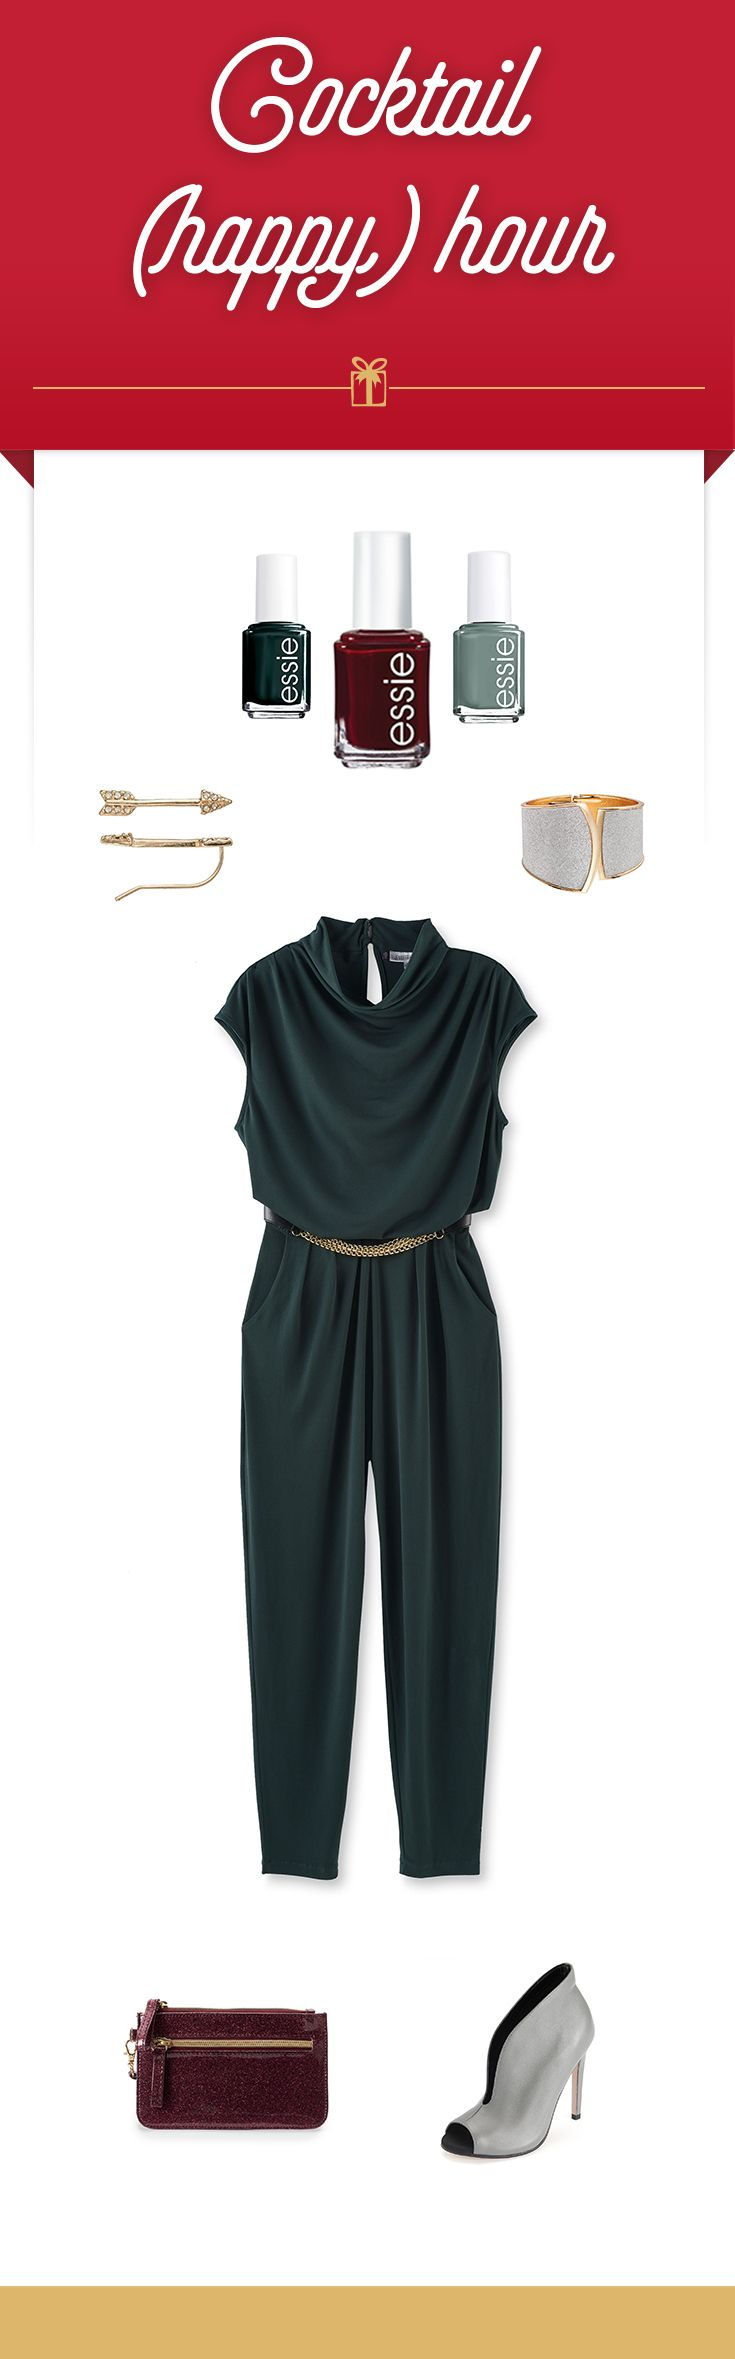 Look no further than the Jennifer Lopez collection for a glam twist on cocktail hour. We love the ease of this figure-flattering, one-and-done jumpsuit. Just add a few key accessories including chic ankle booties and a bold cuff. Outfit items from top to bottom: essie nail polish in Stylenomics, Berry Naughty and For the Twill of It, LC Lauren Conrad arrow earrings, Apt. 9 cuff, Jennifer Lopez jumpsuit, Apt. 9 wristlet, and ShoeMint gray booties. Find this happy hour outfit and more at…